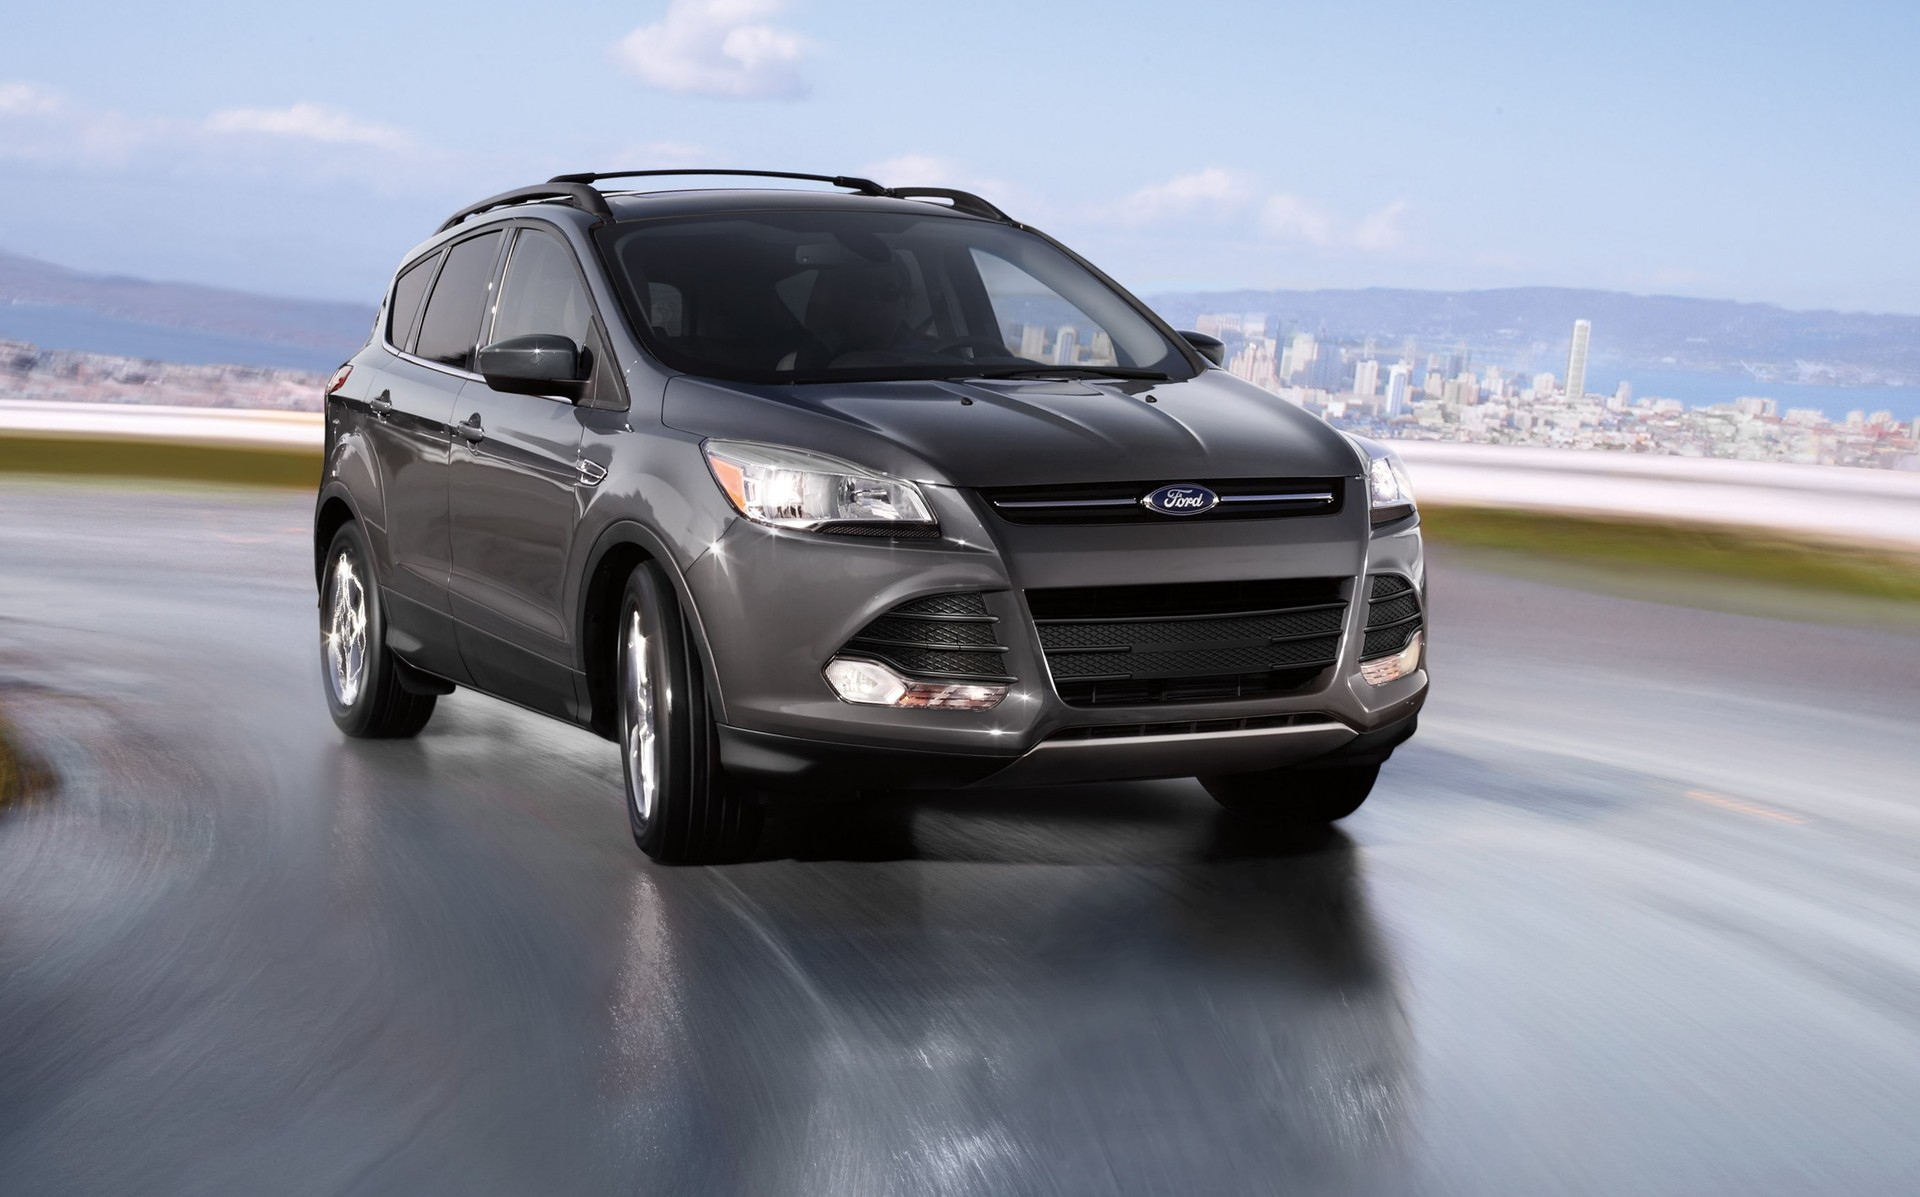 2015 ford escape gas mileage the car connection. Black Bedroom Furniture Sets. Home Design Ideas